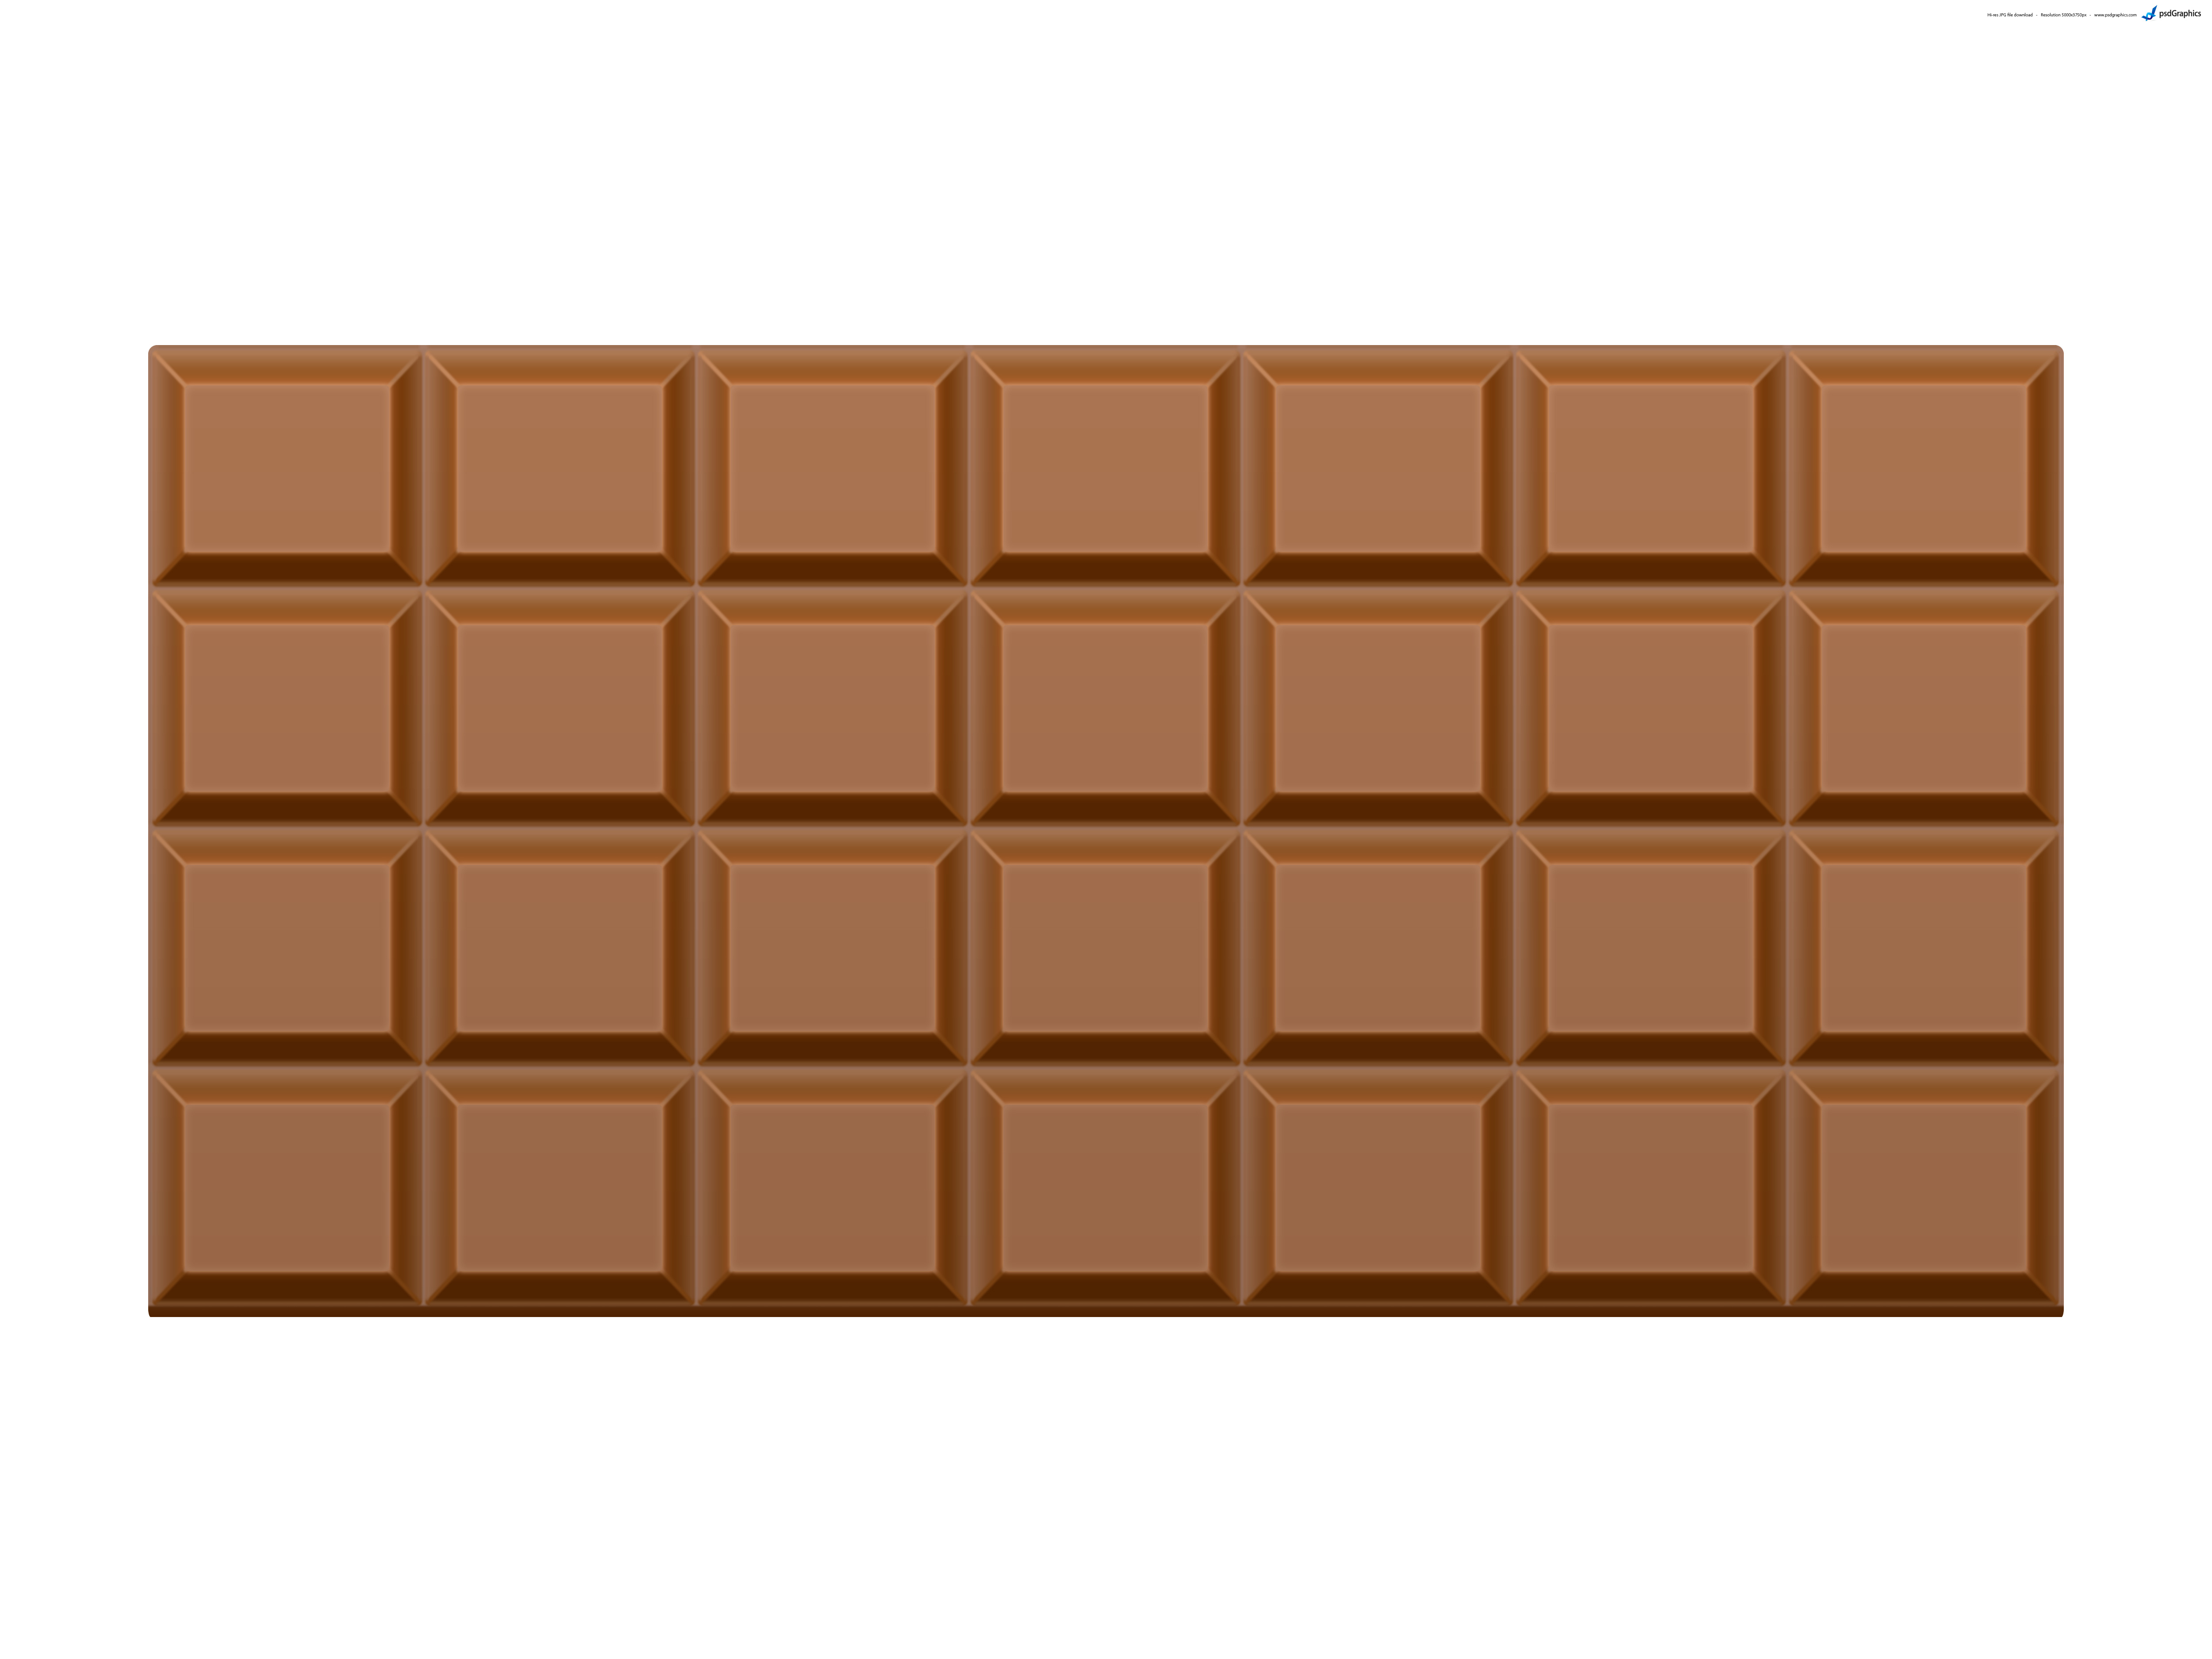 how to make chocolate lego amount of chcolate